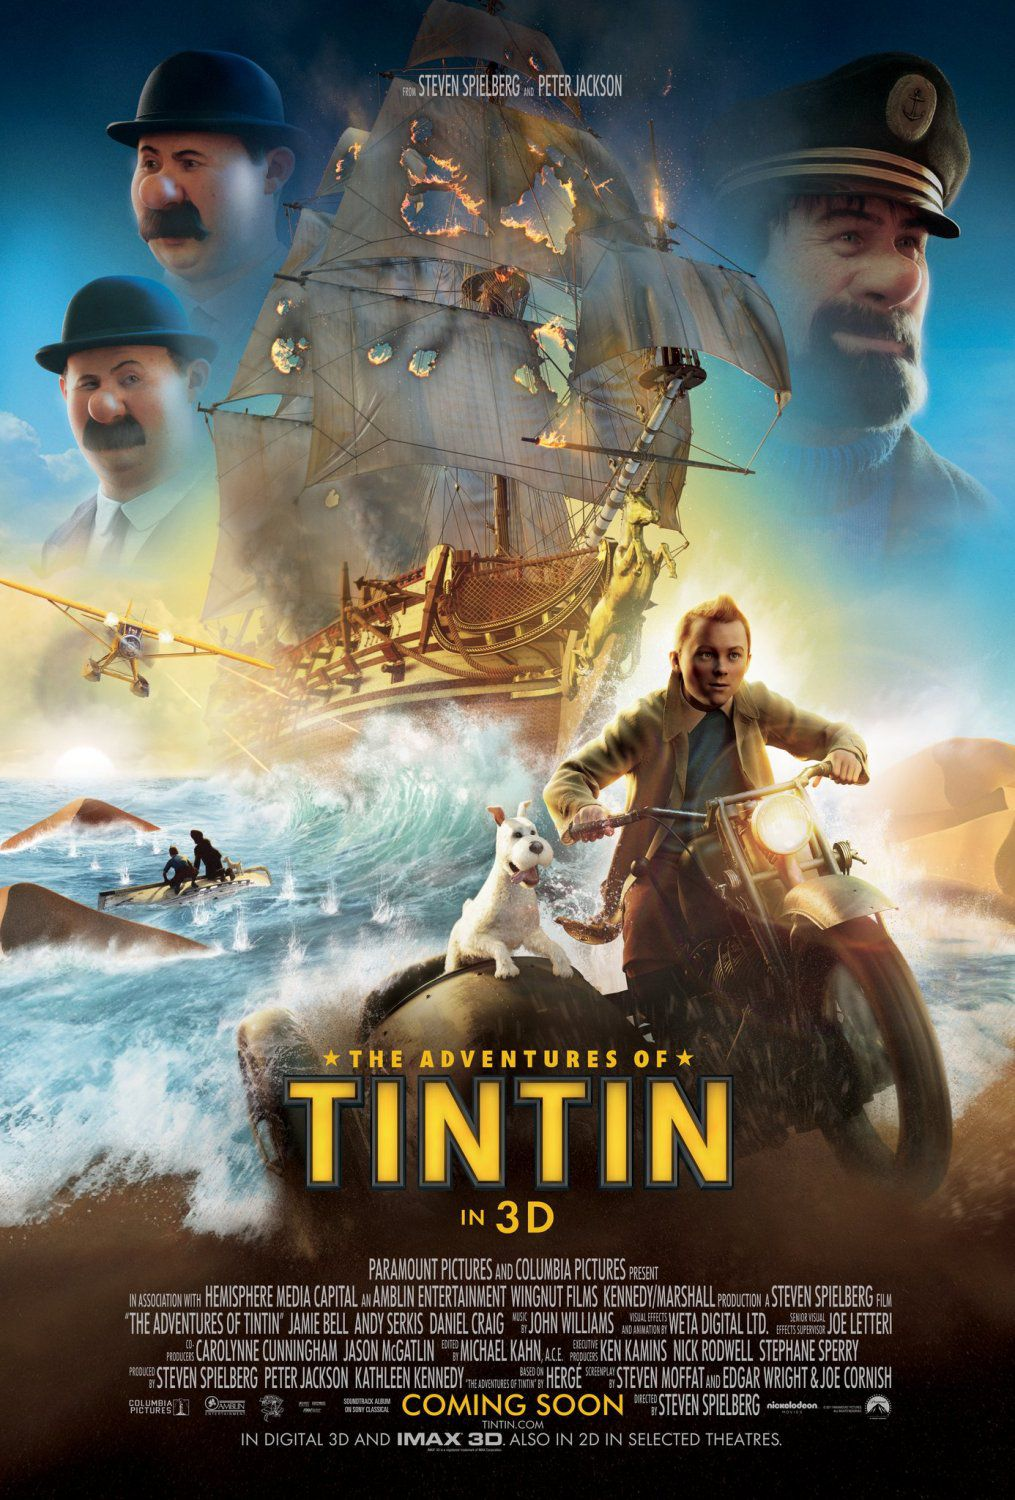 Le Avventure di Tintin il segreto dell'Unicorno - Adventures of Tintin secret of the Unicorn - live action film poster